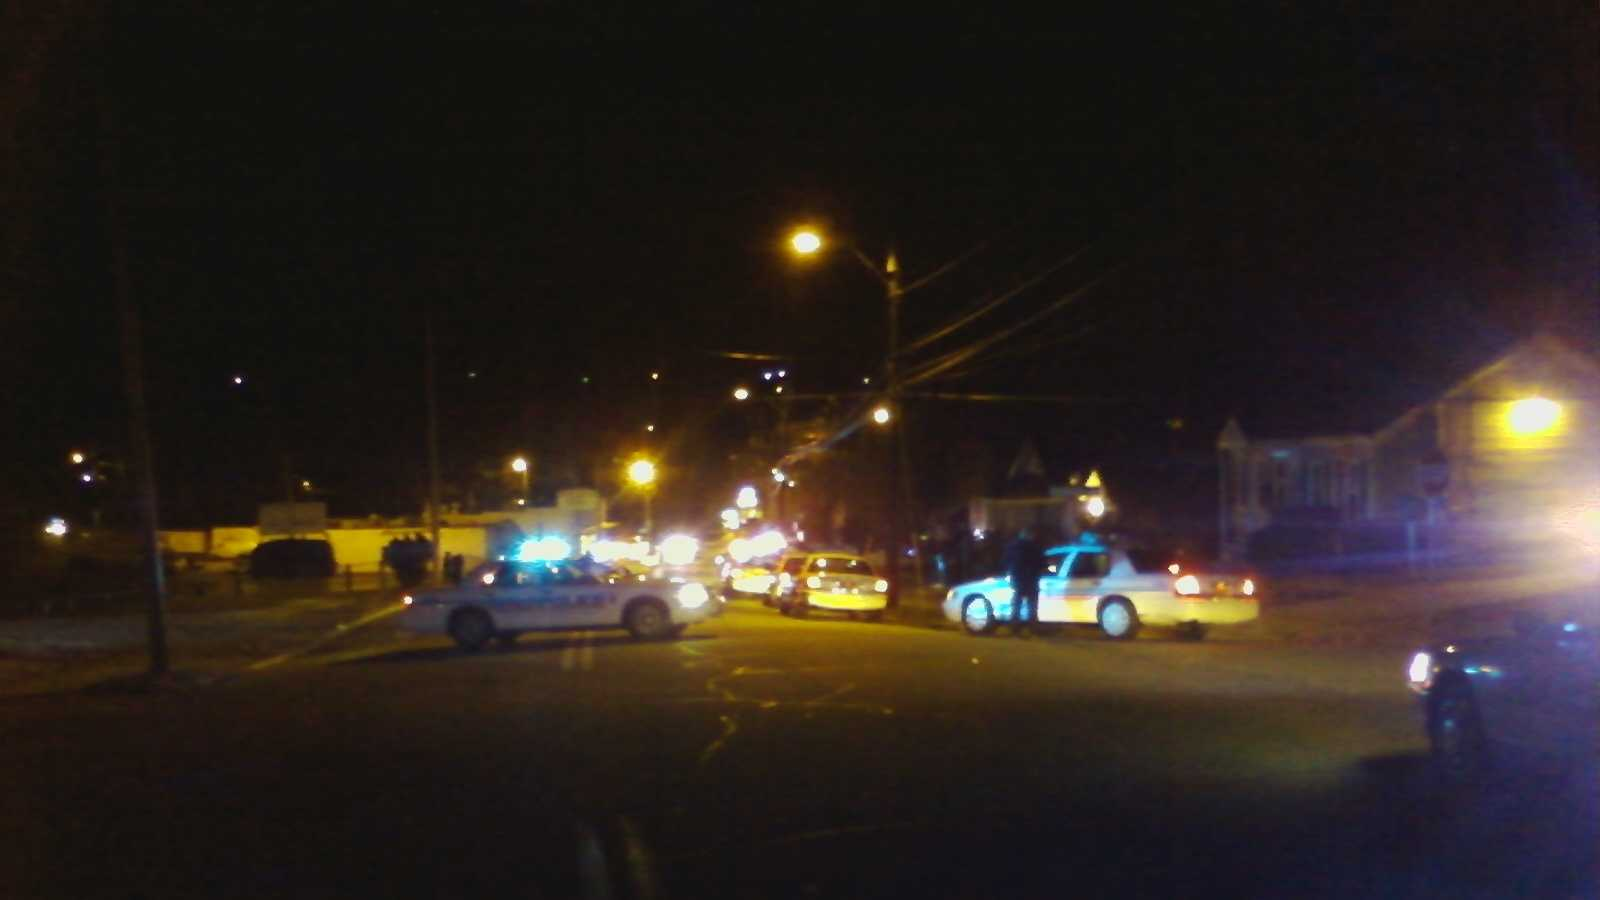 Winston-Salem police are still investigating. (Photo by WXII's David Efird)